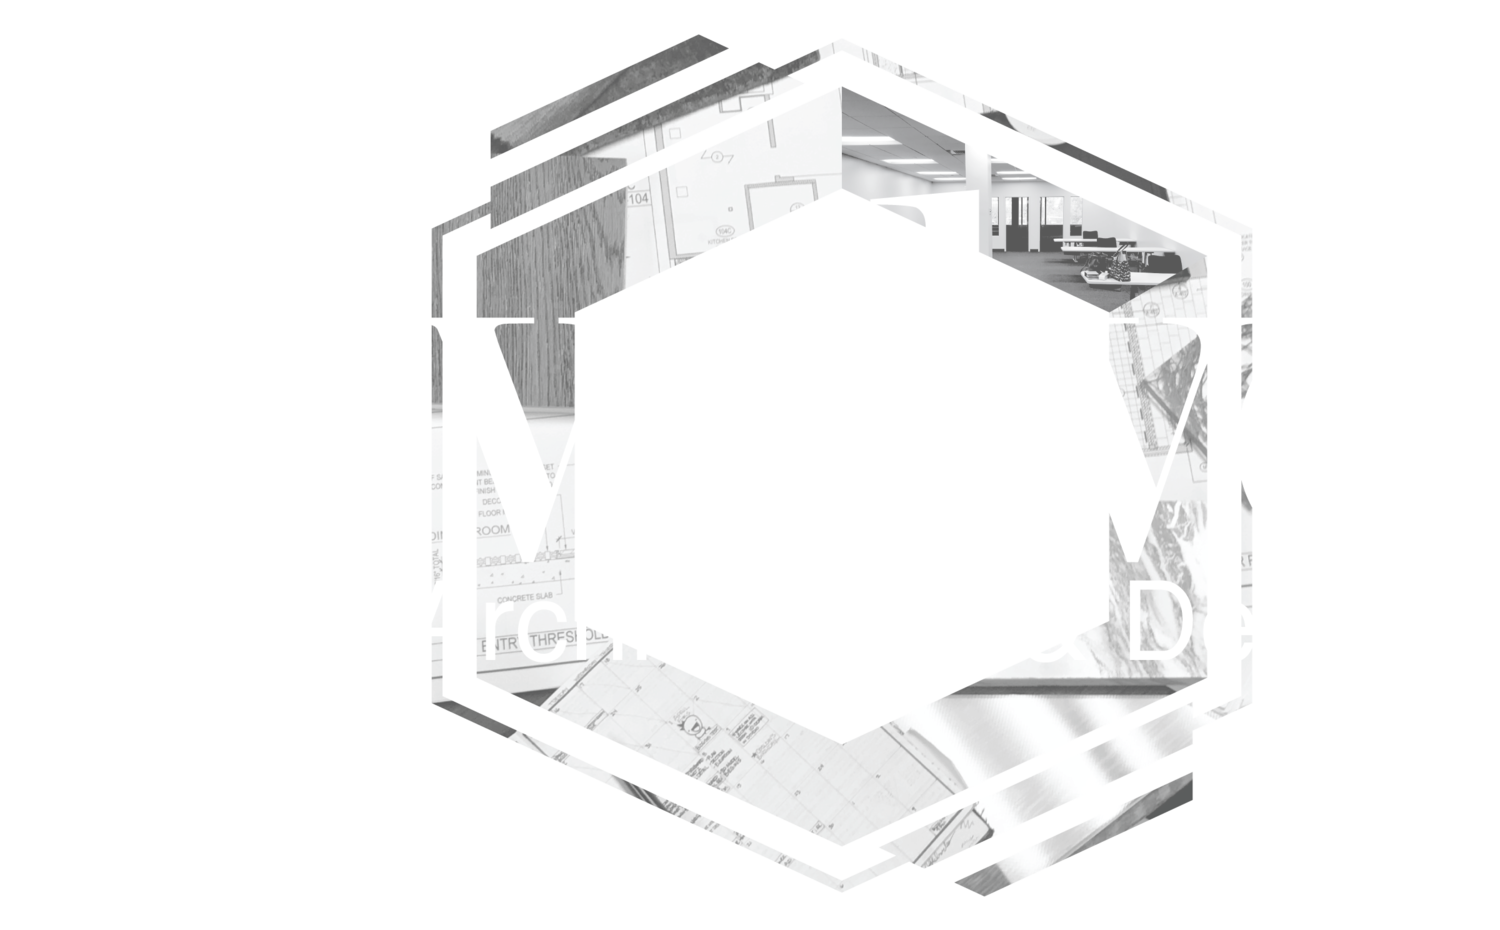 Evolve Architecture & Design